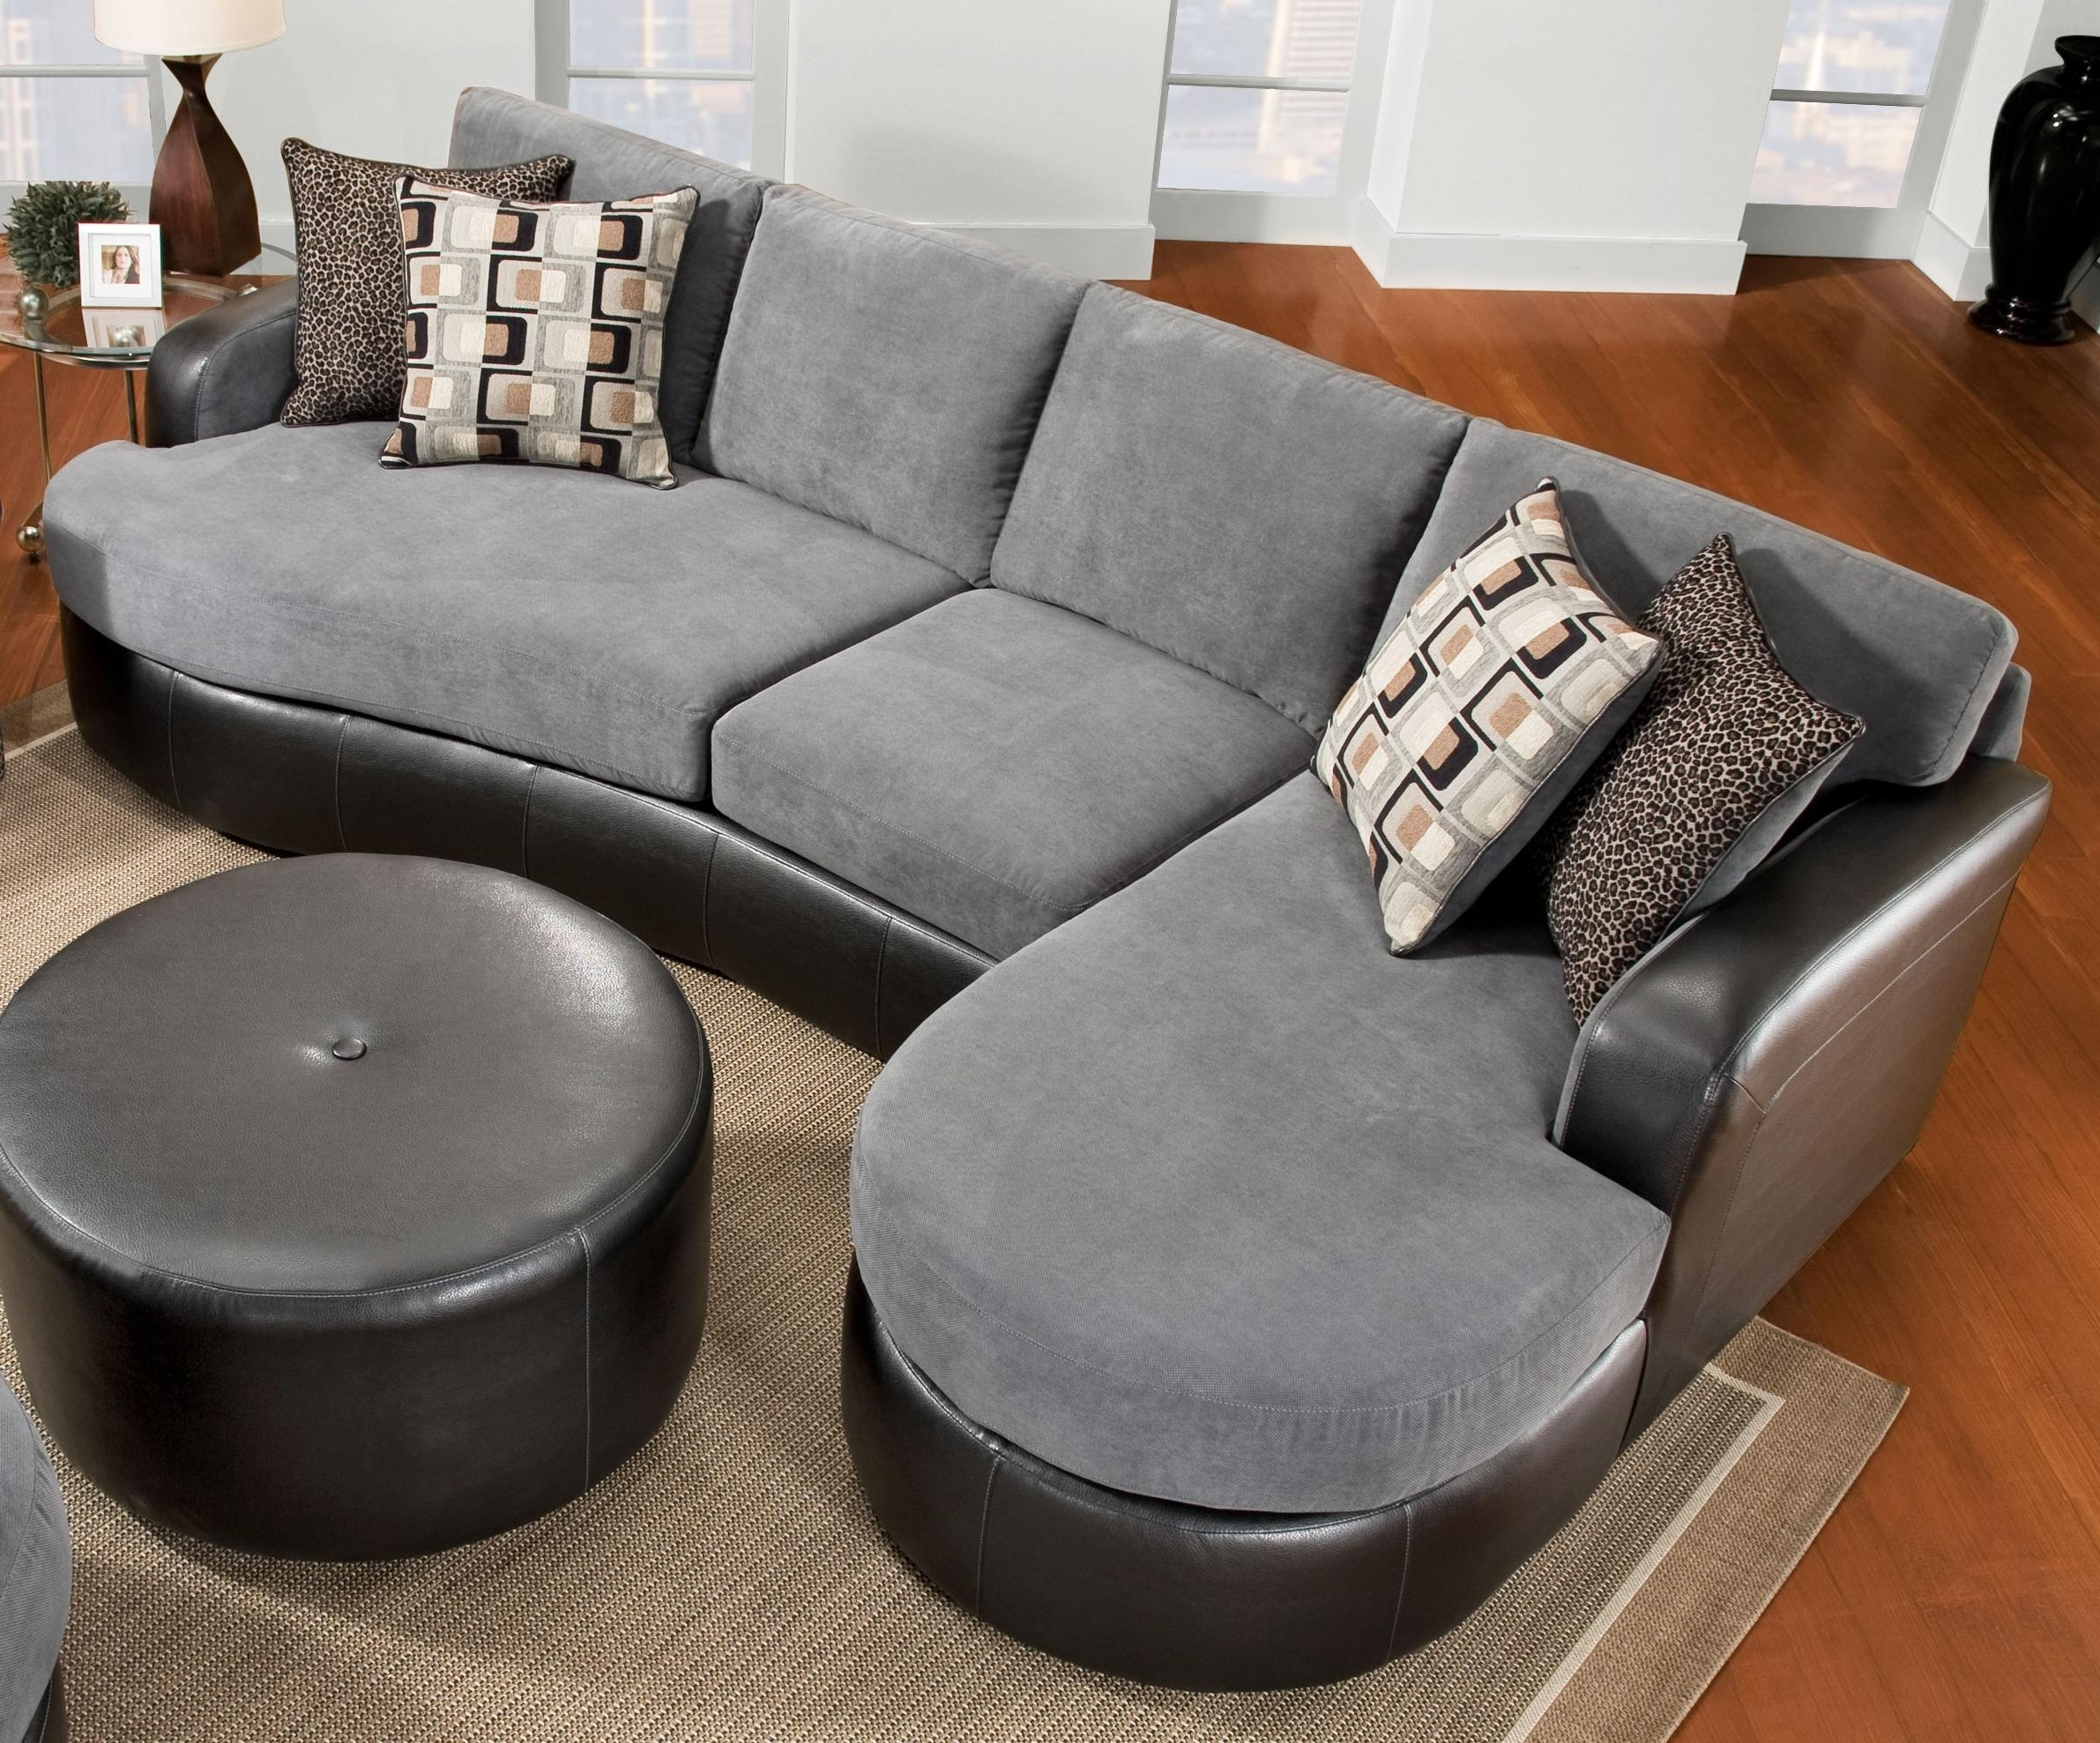 Preferred Home Design : Cool Best Modern Fabric Sectional Sofas With Chaise In Sectional Sofas With Chaise And Ottoman (View 9 of 15)